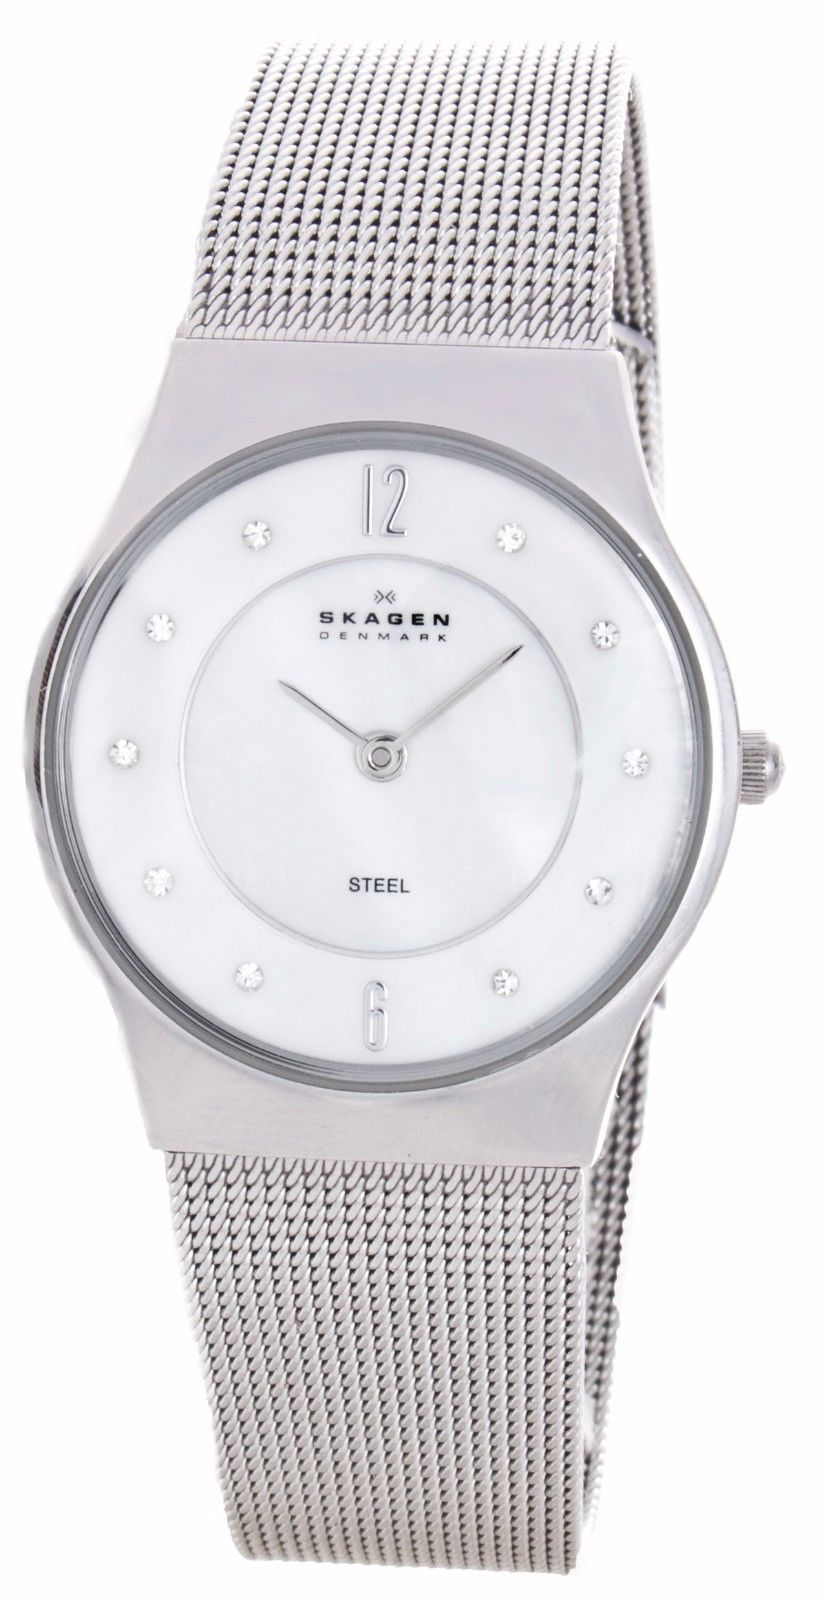 "Image of ""Skagen Denmark O233Sss1 Stainless Steel White Mother of Pearl Dial"""